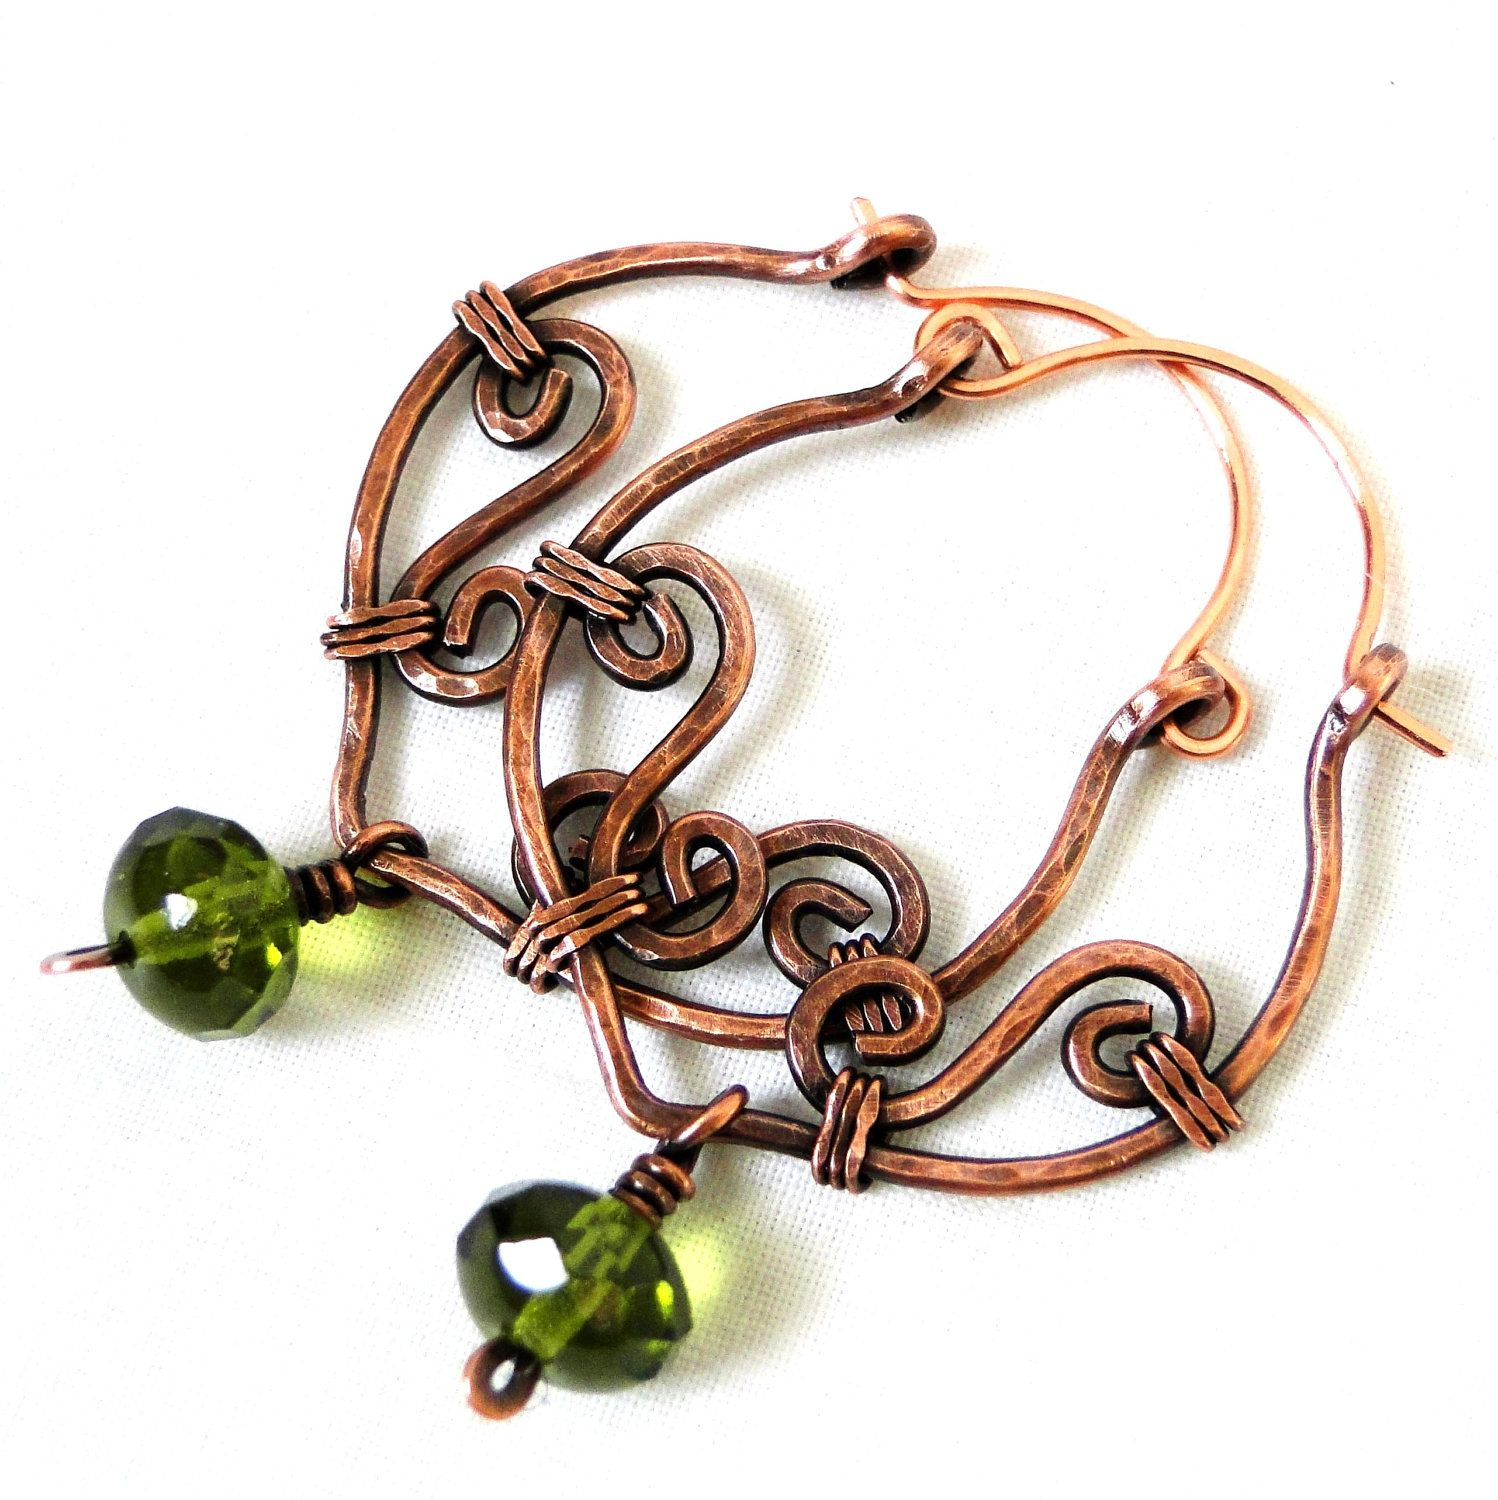 Hoop Earrings, Antiqued Copper Jewelry, Grassy Green Glass, Wire ...